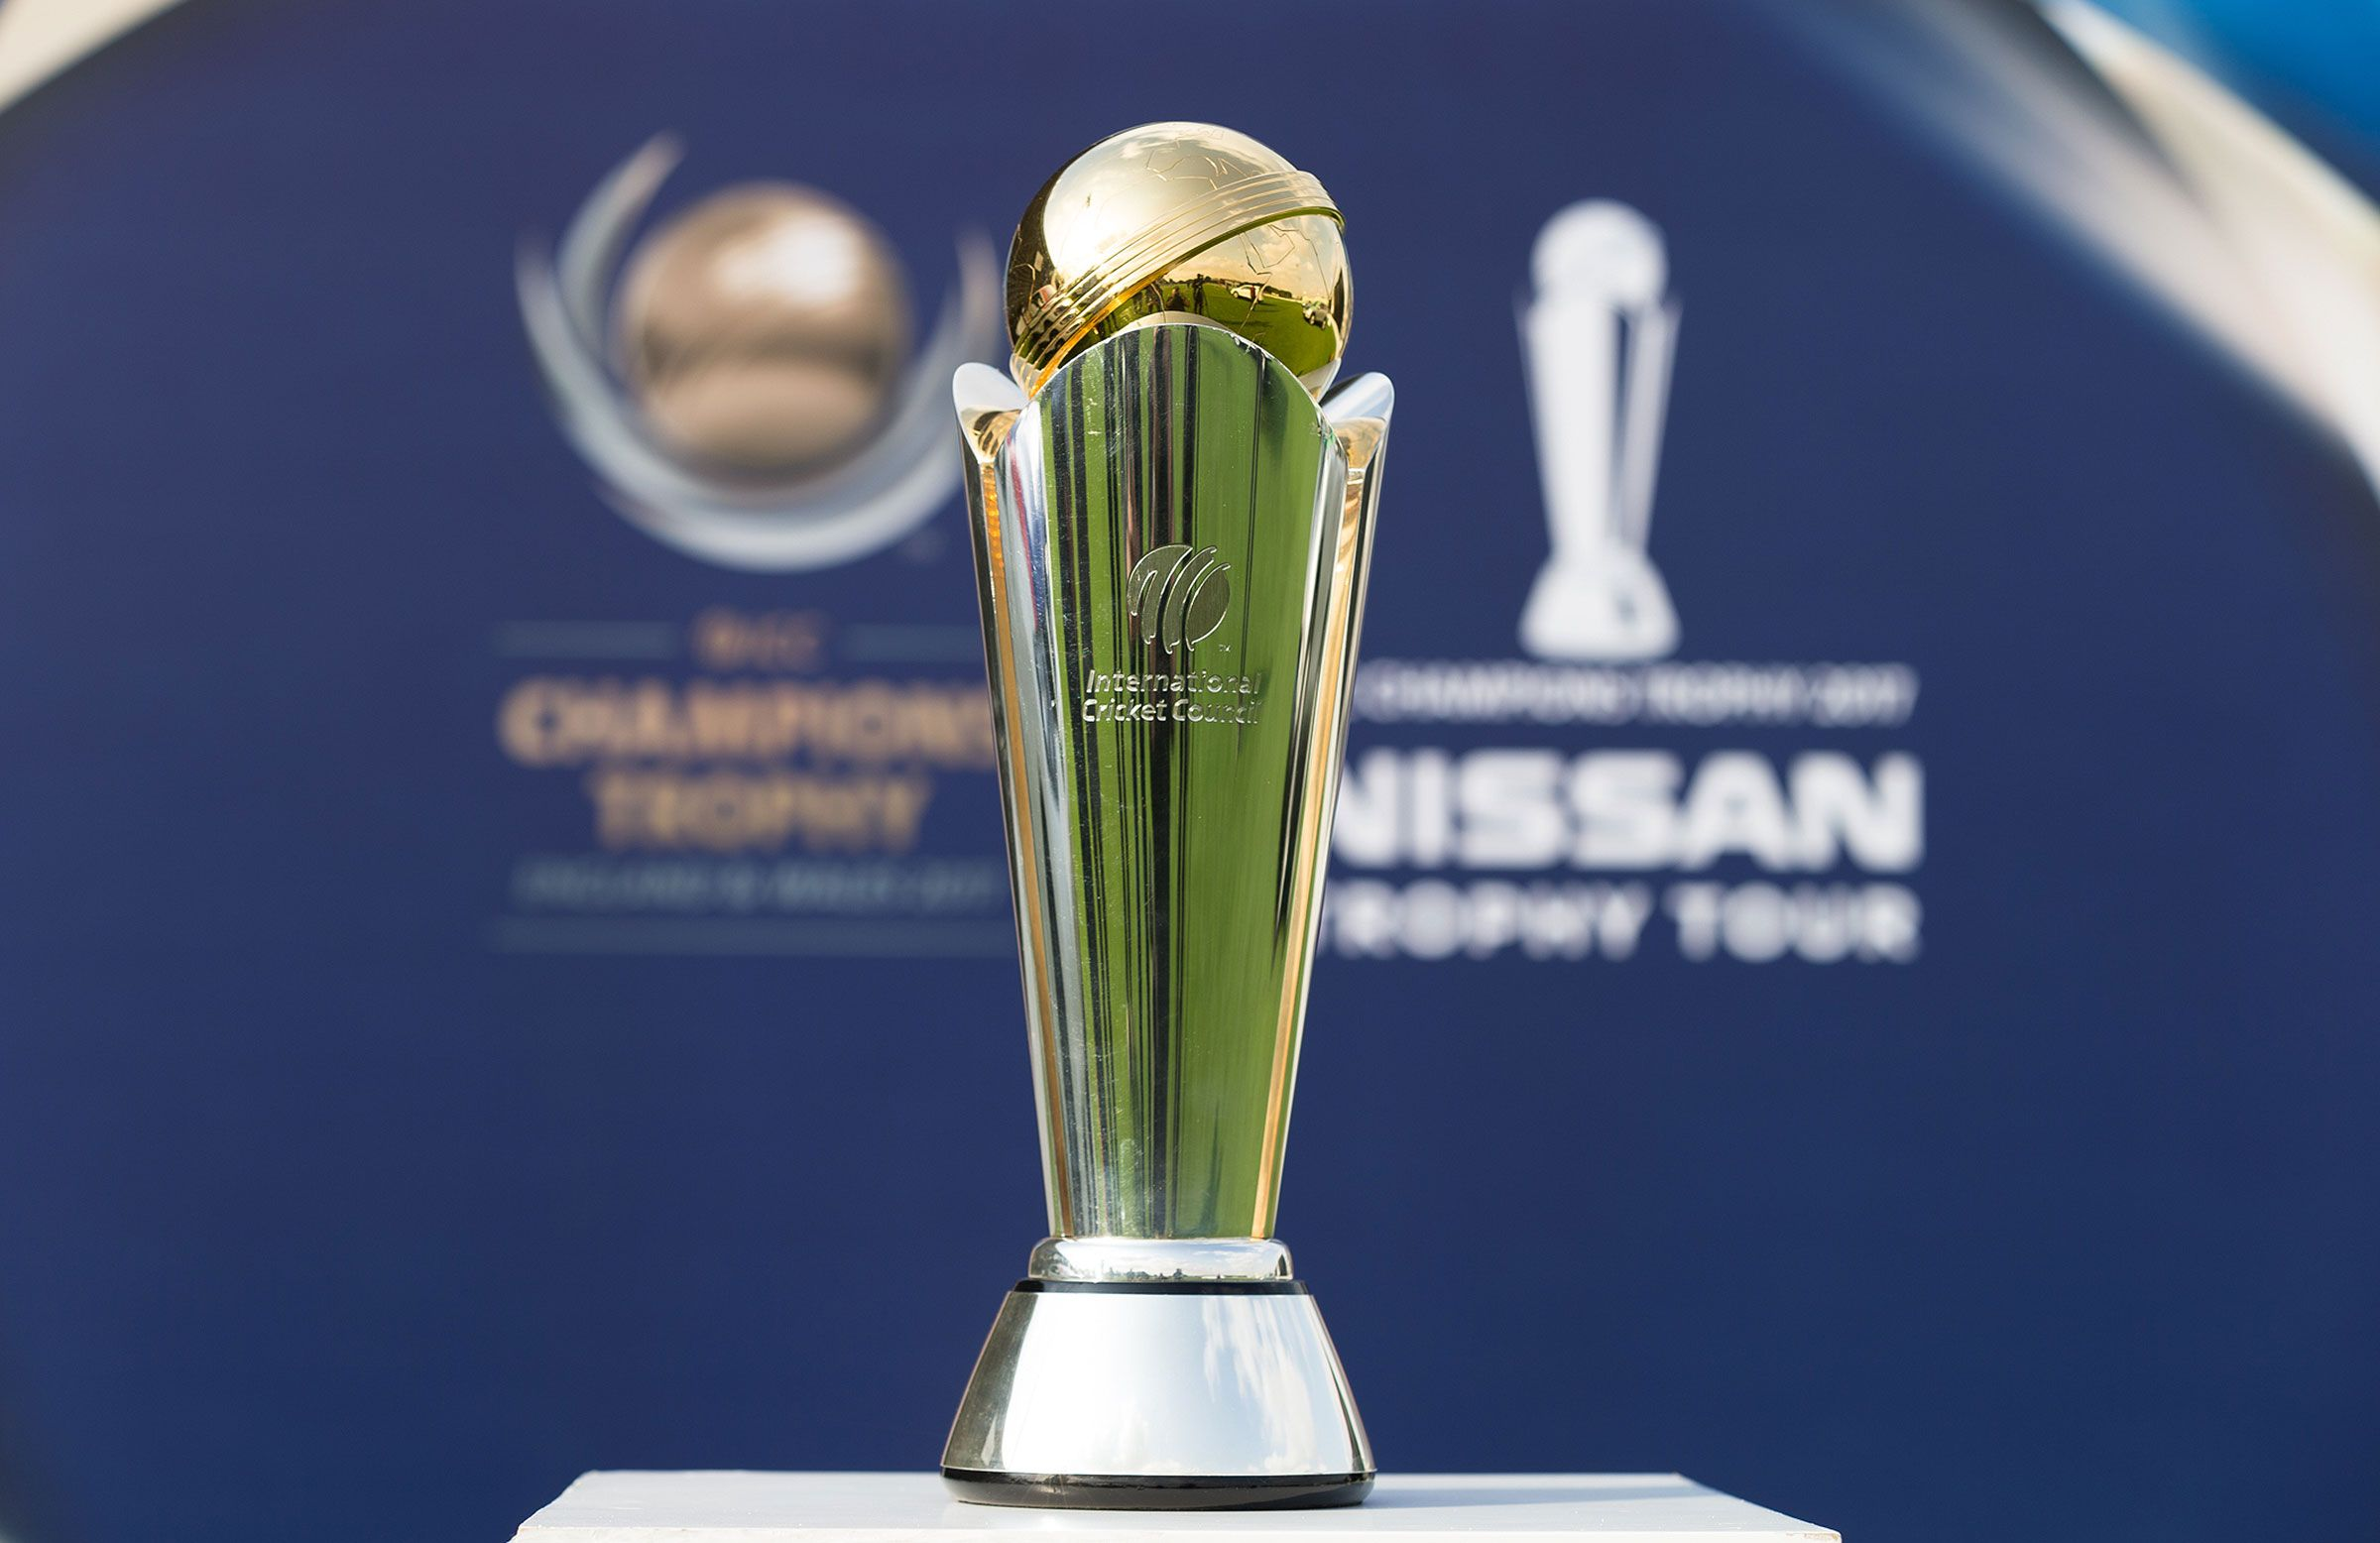 ICC Champions Trophy 2017 HD Images 4 Whb ICCChampionsTrophy2017HDImages ICCChampionsTrophy2017 ICCChampionsTrophy Cricket Wallpapers Hdwallpapers